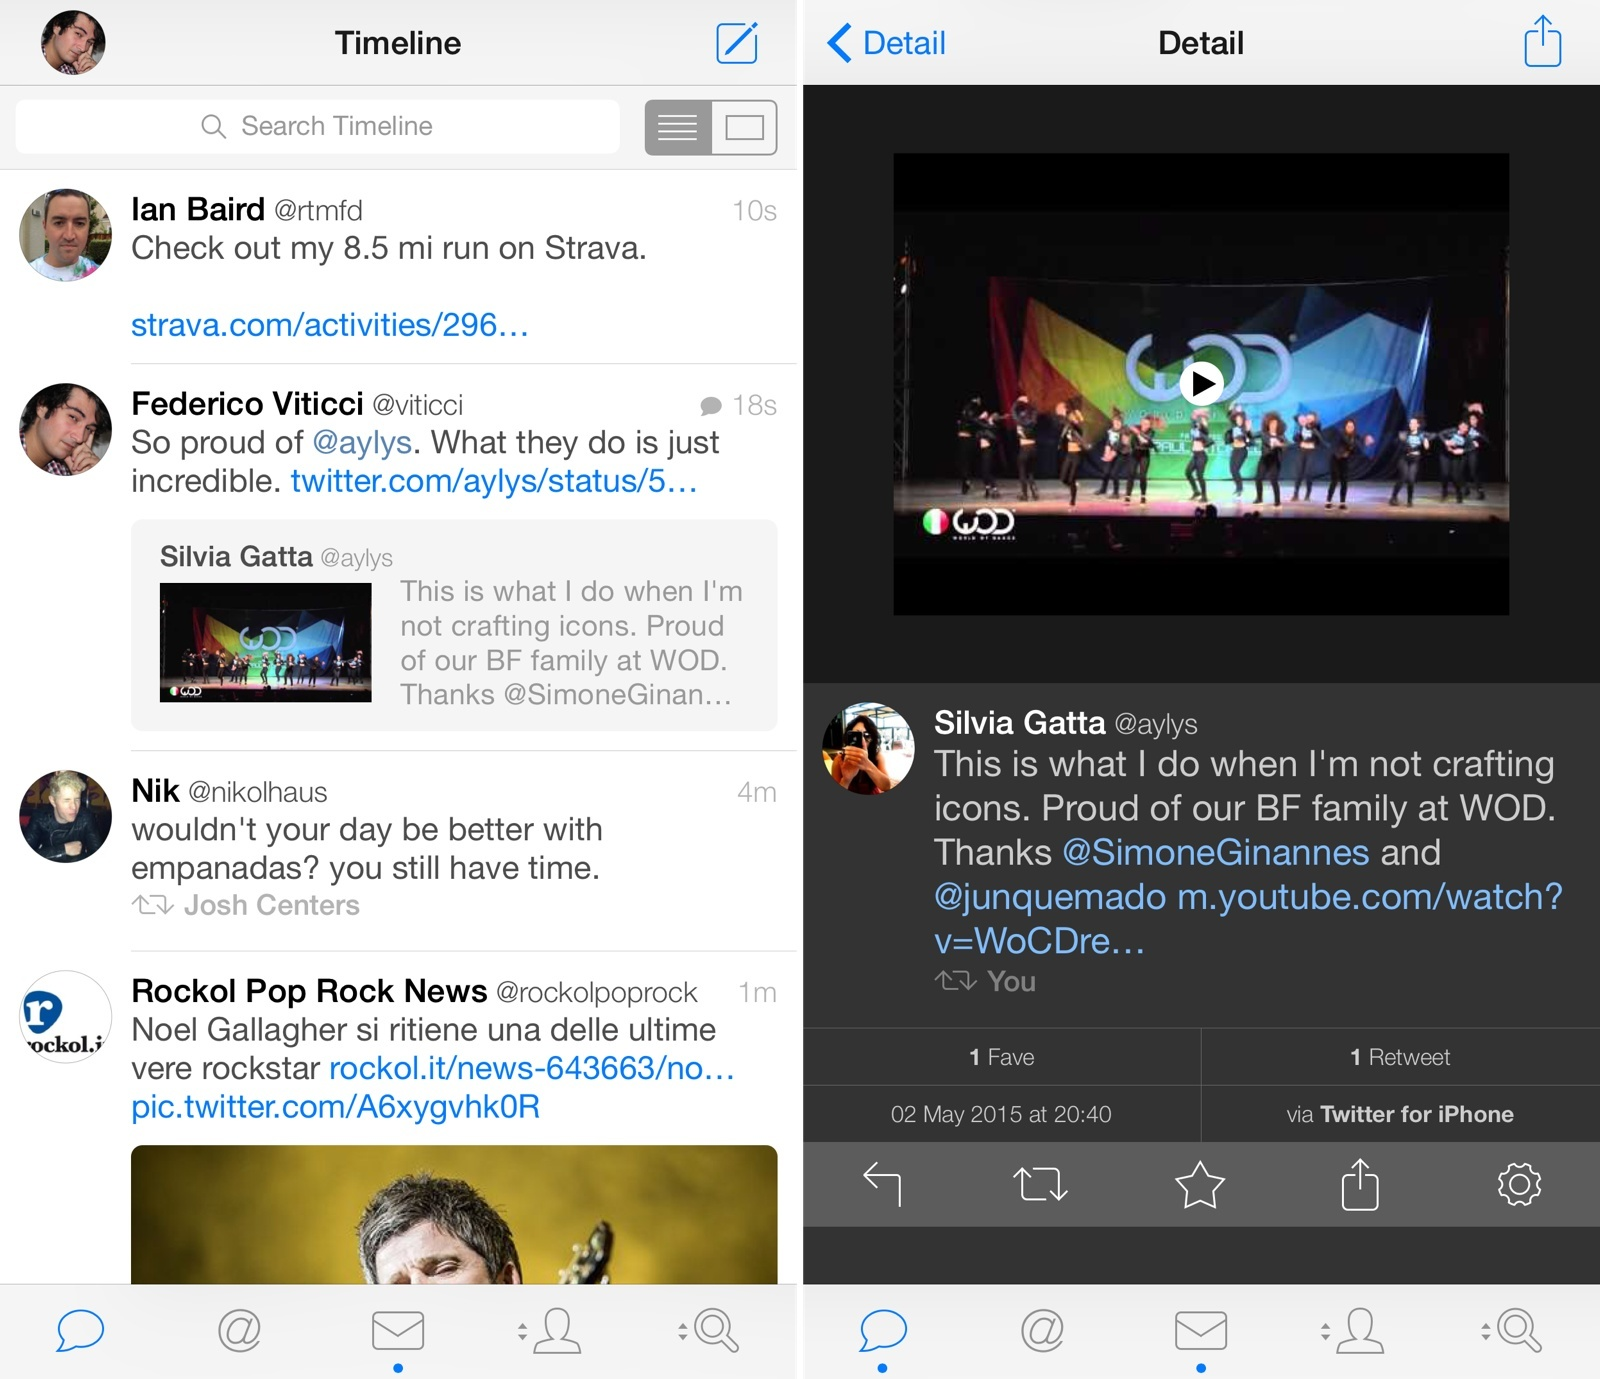 Tweetbot Adds Support for New Twitter 'Quote' Feature